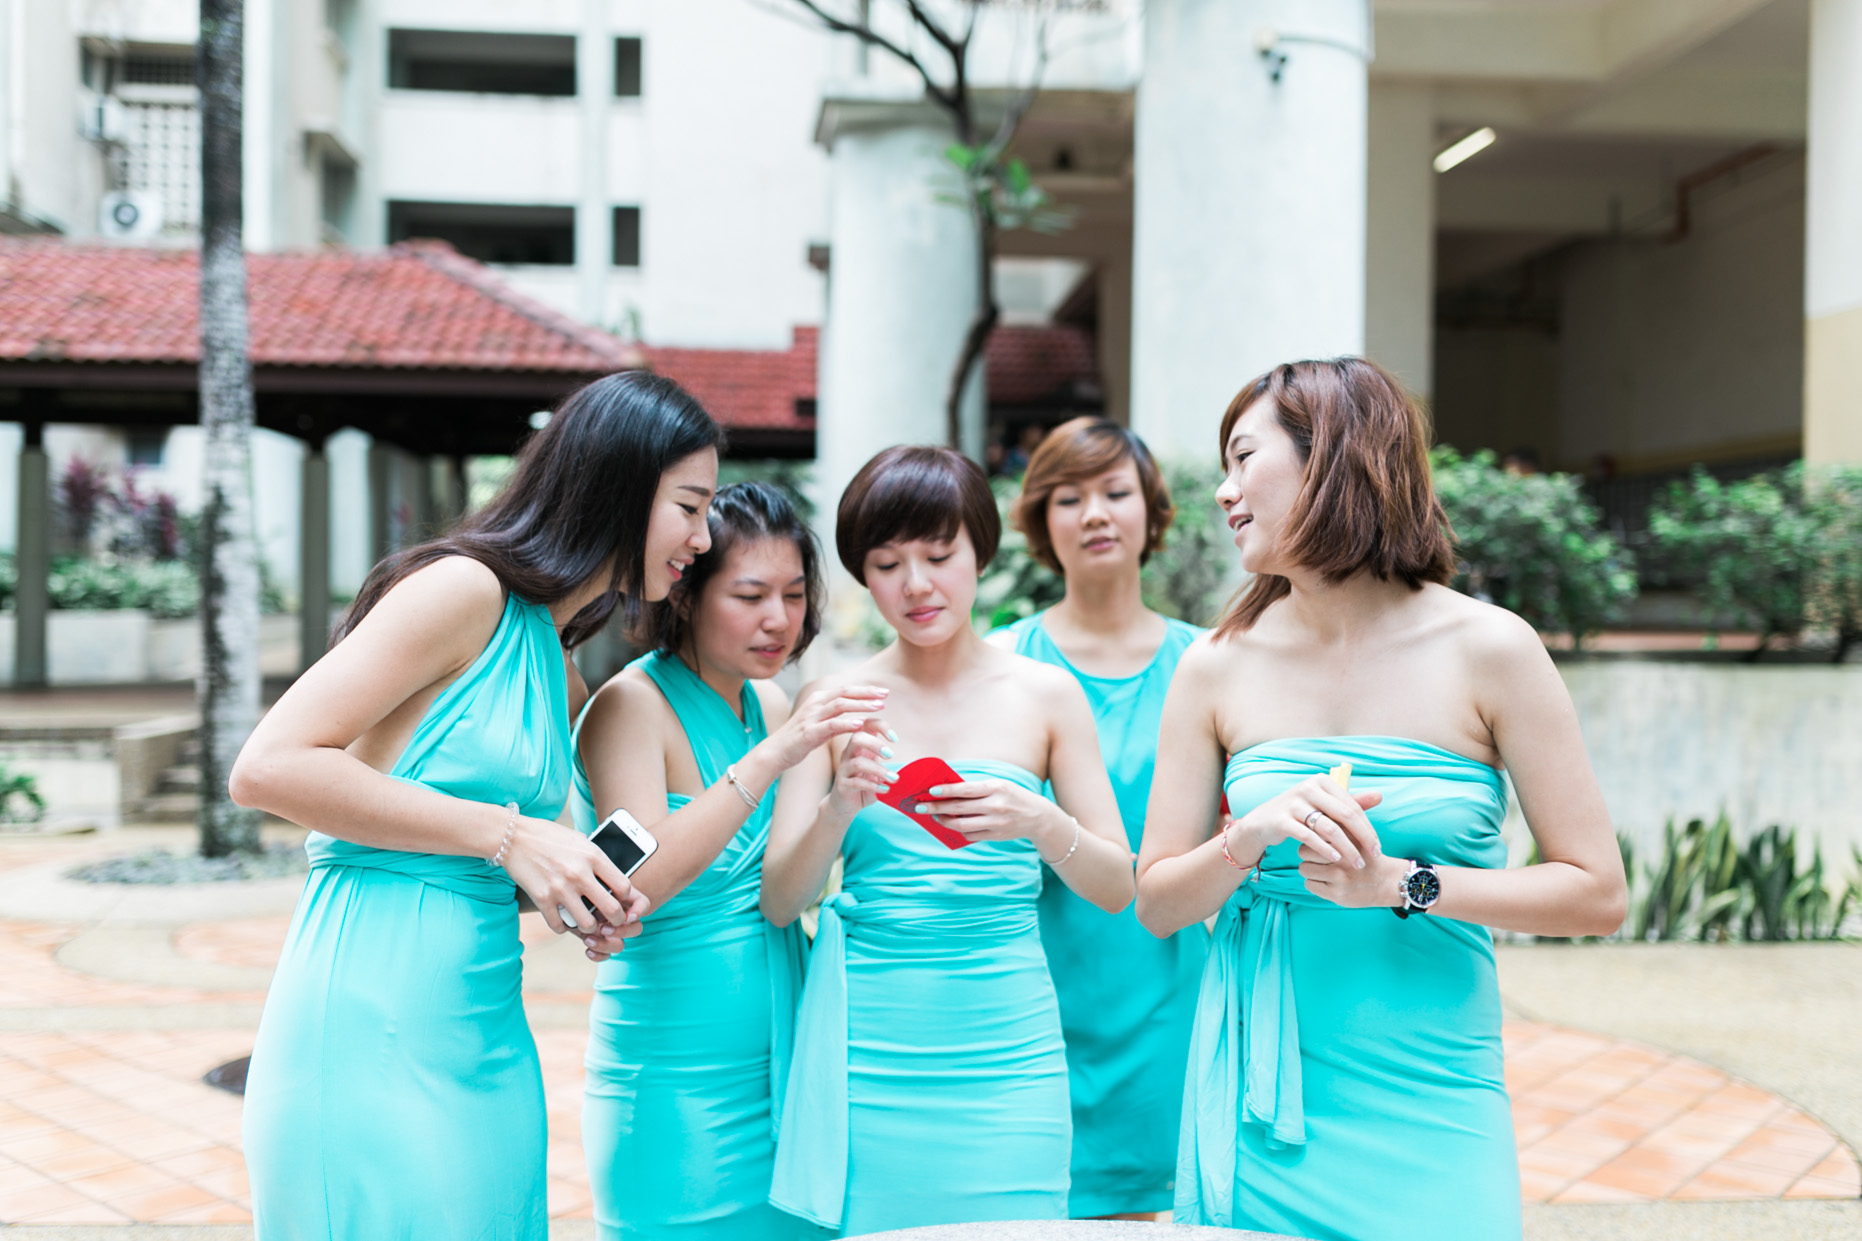 37-hellojanelee-malaysia-wedding-photographer-lake-garden-tinajackson-prewedding